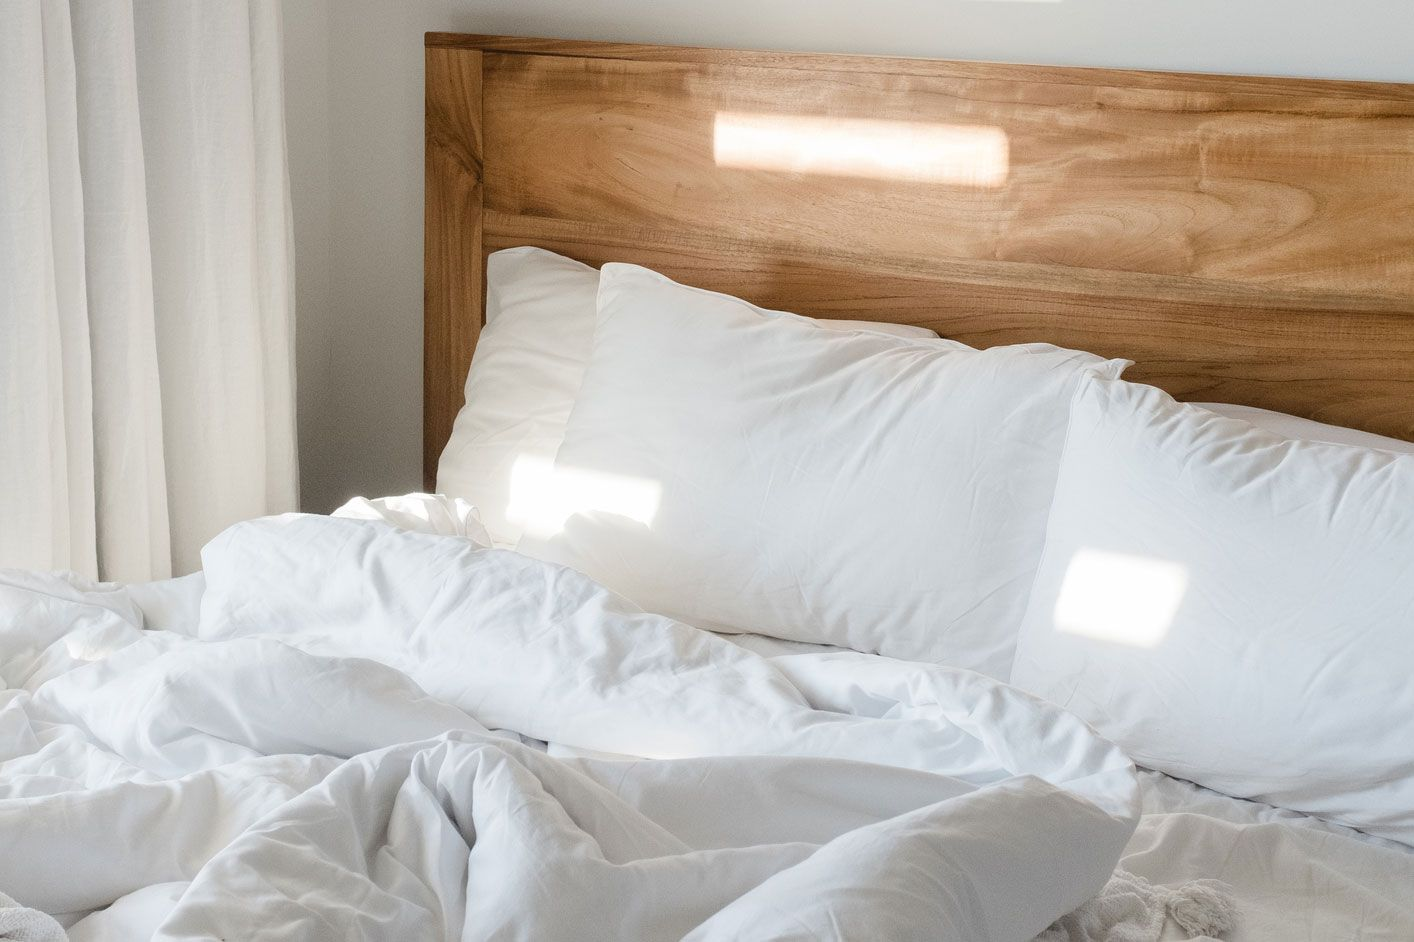 Picture of: 7 Things To Consider Before You Buy A Down Comforter Or Blanket